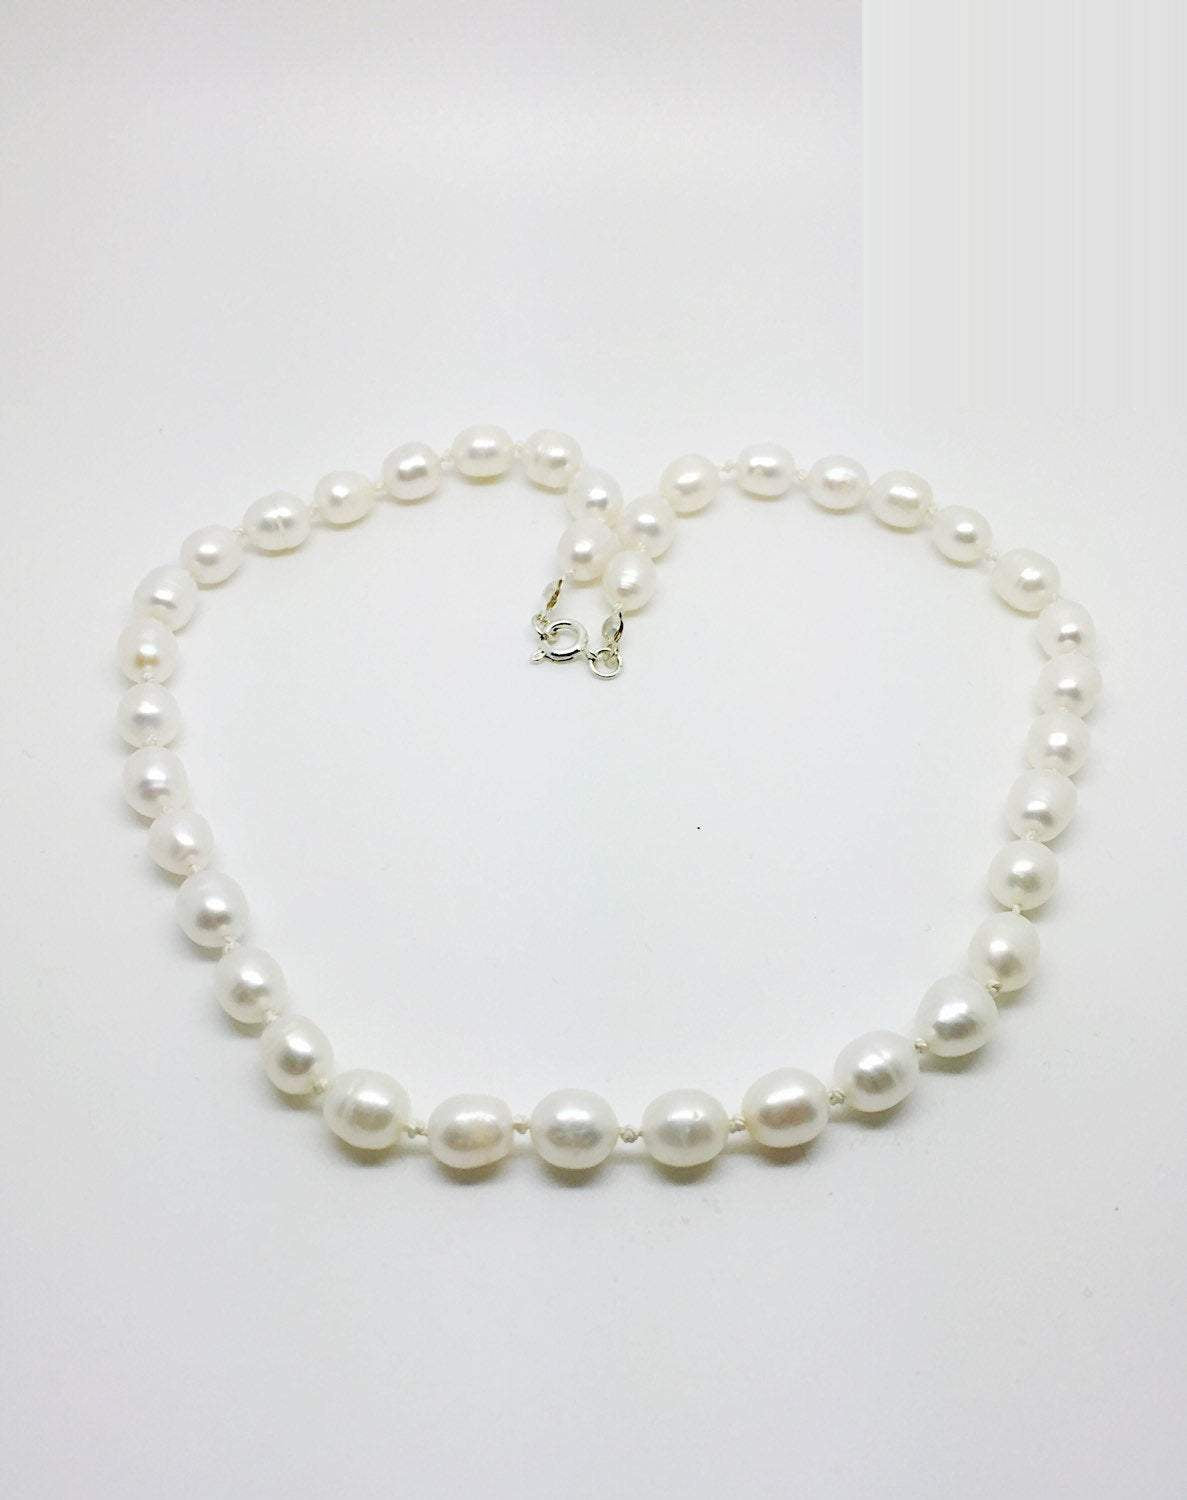 White freshwater pearl knotted necklace, pearl necklace, white pearl necklace,  white freshwater pearl jewellry, knotted pe arl necklace